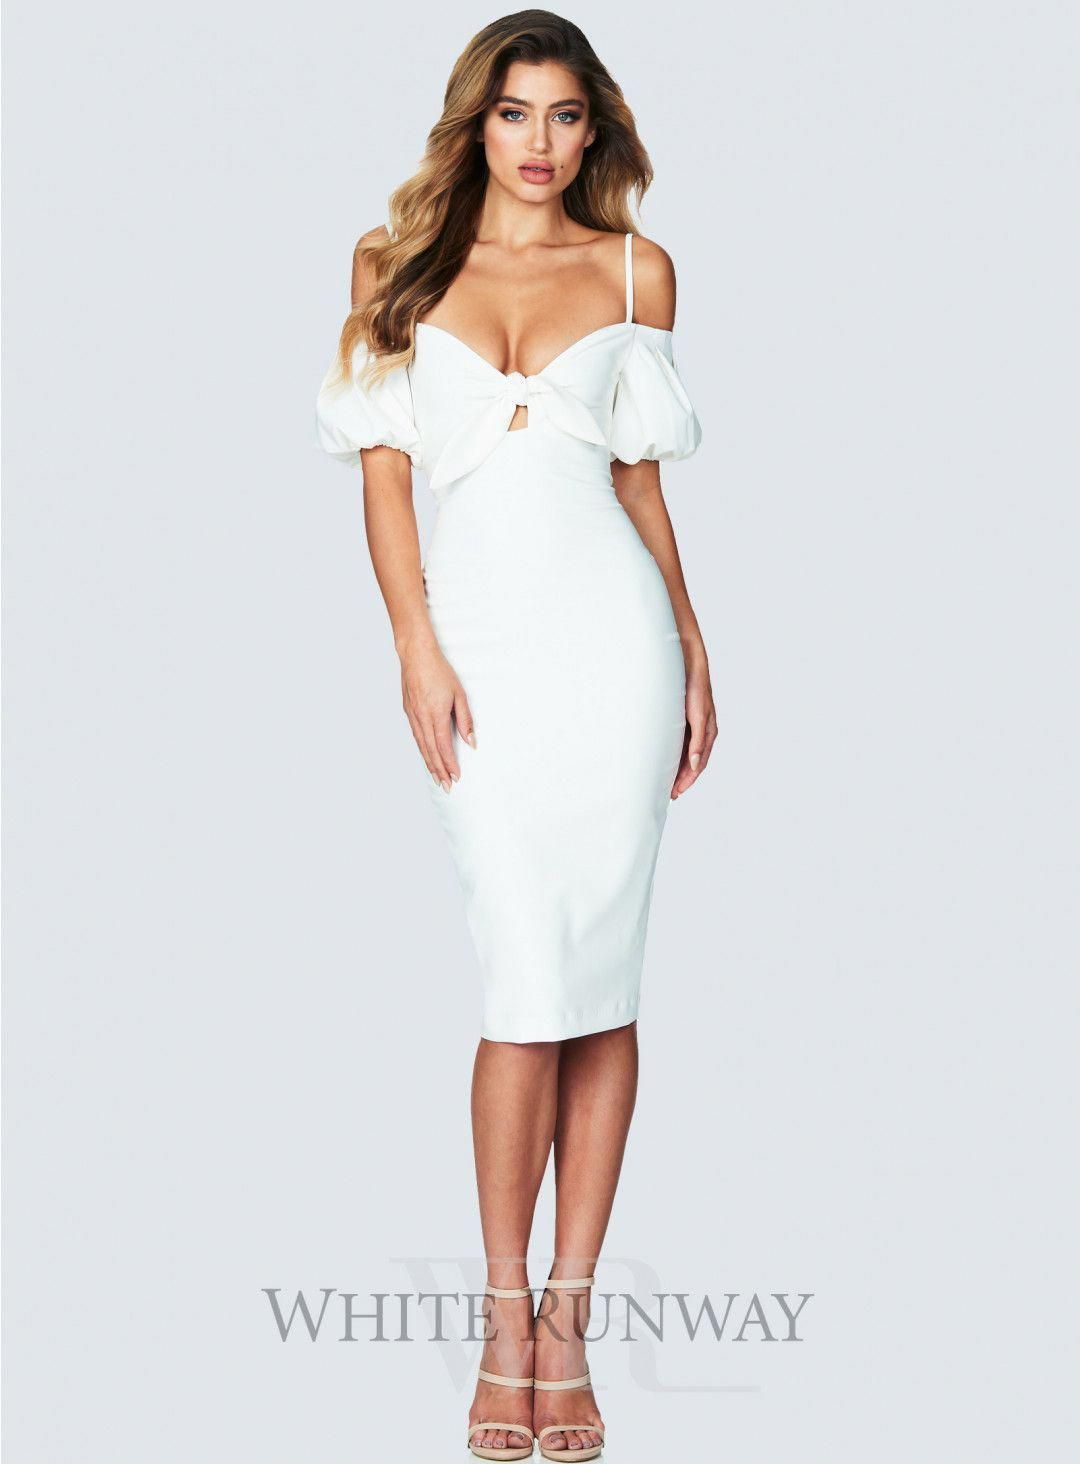 3142cbd6eaf Belle Midi. A stunning bodycon midi by Nookie. An off shoulder style  featuring bow tie at the bodice and flared sleeves.  bridesmaidfashion   fashion ...